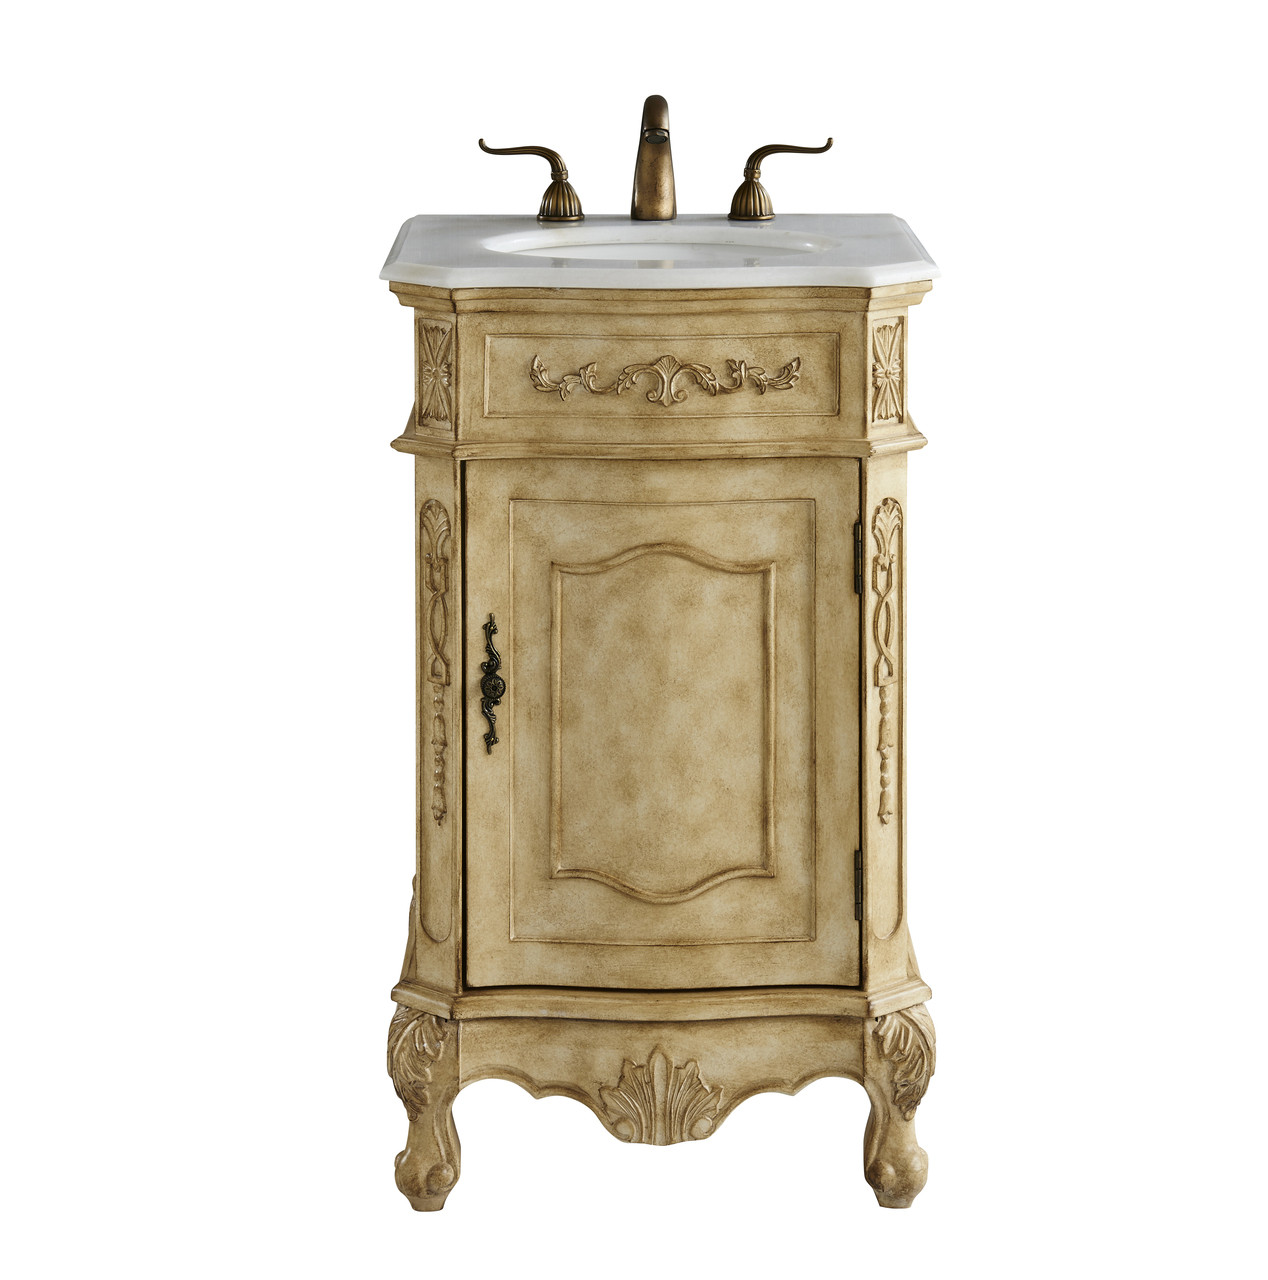 Swell Elegant Decor Vf10121Ab 21 In Single Bathroom Vanity Set In Antique Beige Download Free Architecture Designs Intelgarnamadebymaigaardcom